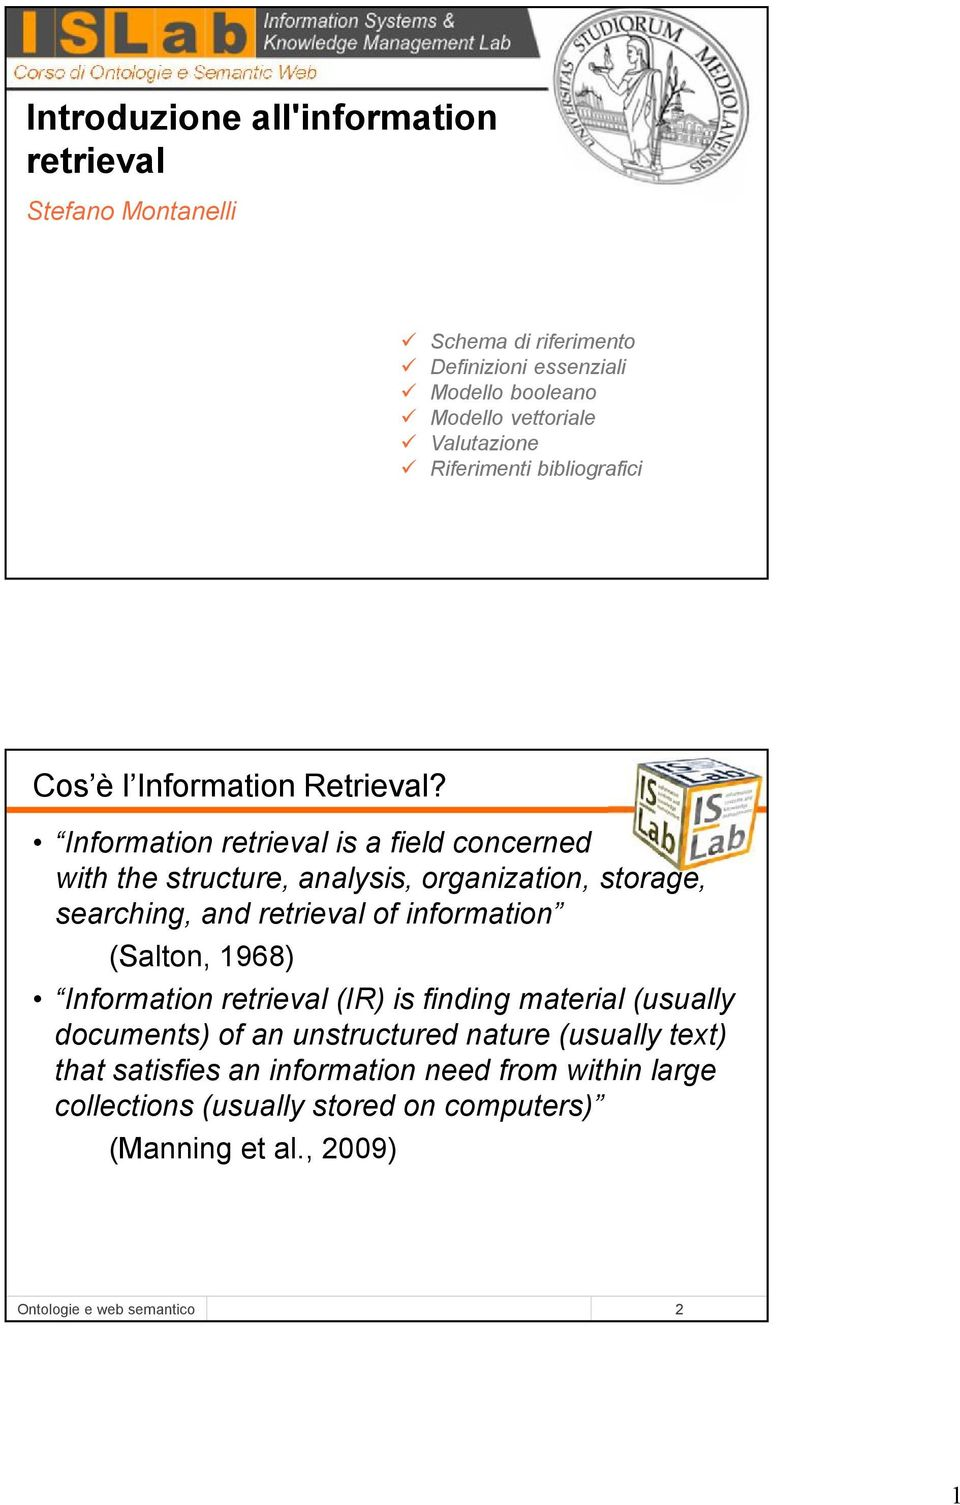 Information retrieval is a field concerned with the structure, analysis, organization, storage, searching, and retrieval of information (Salton, 1968)